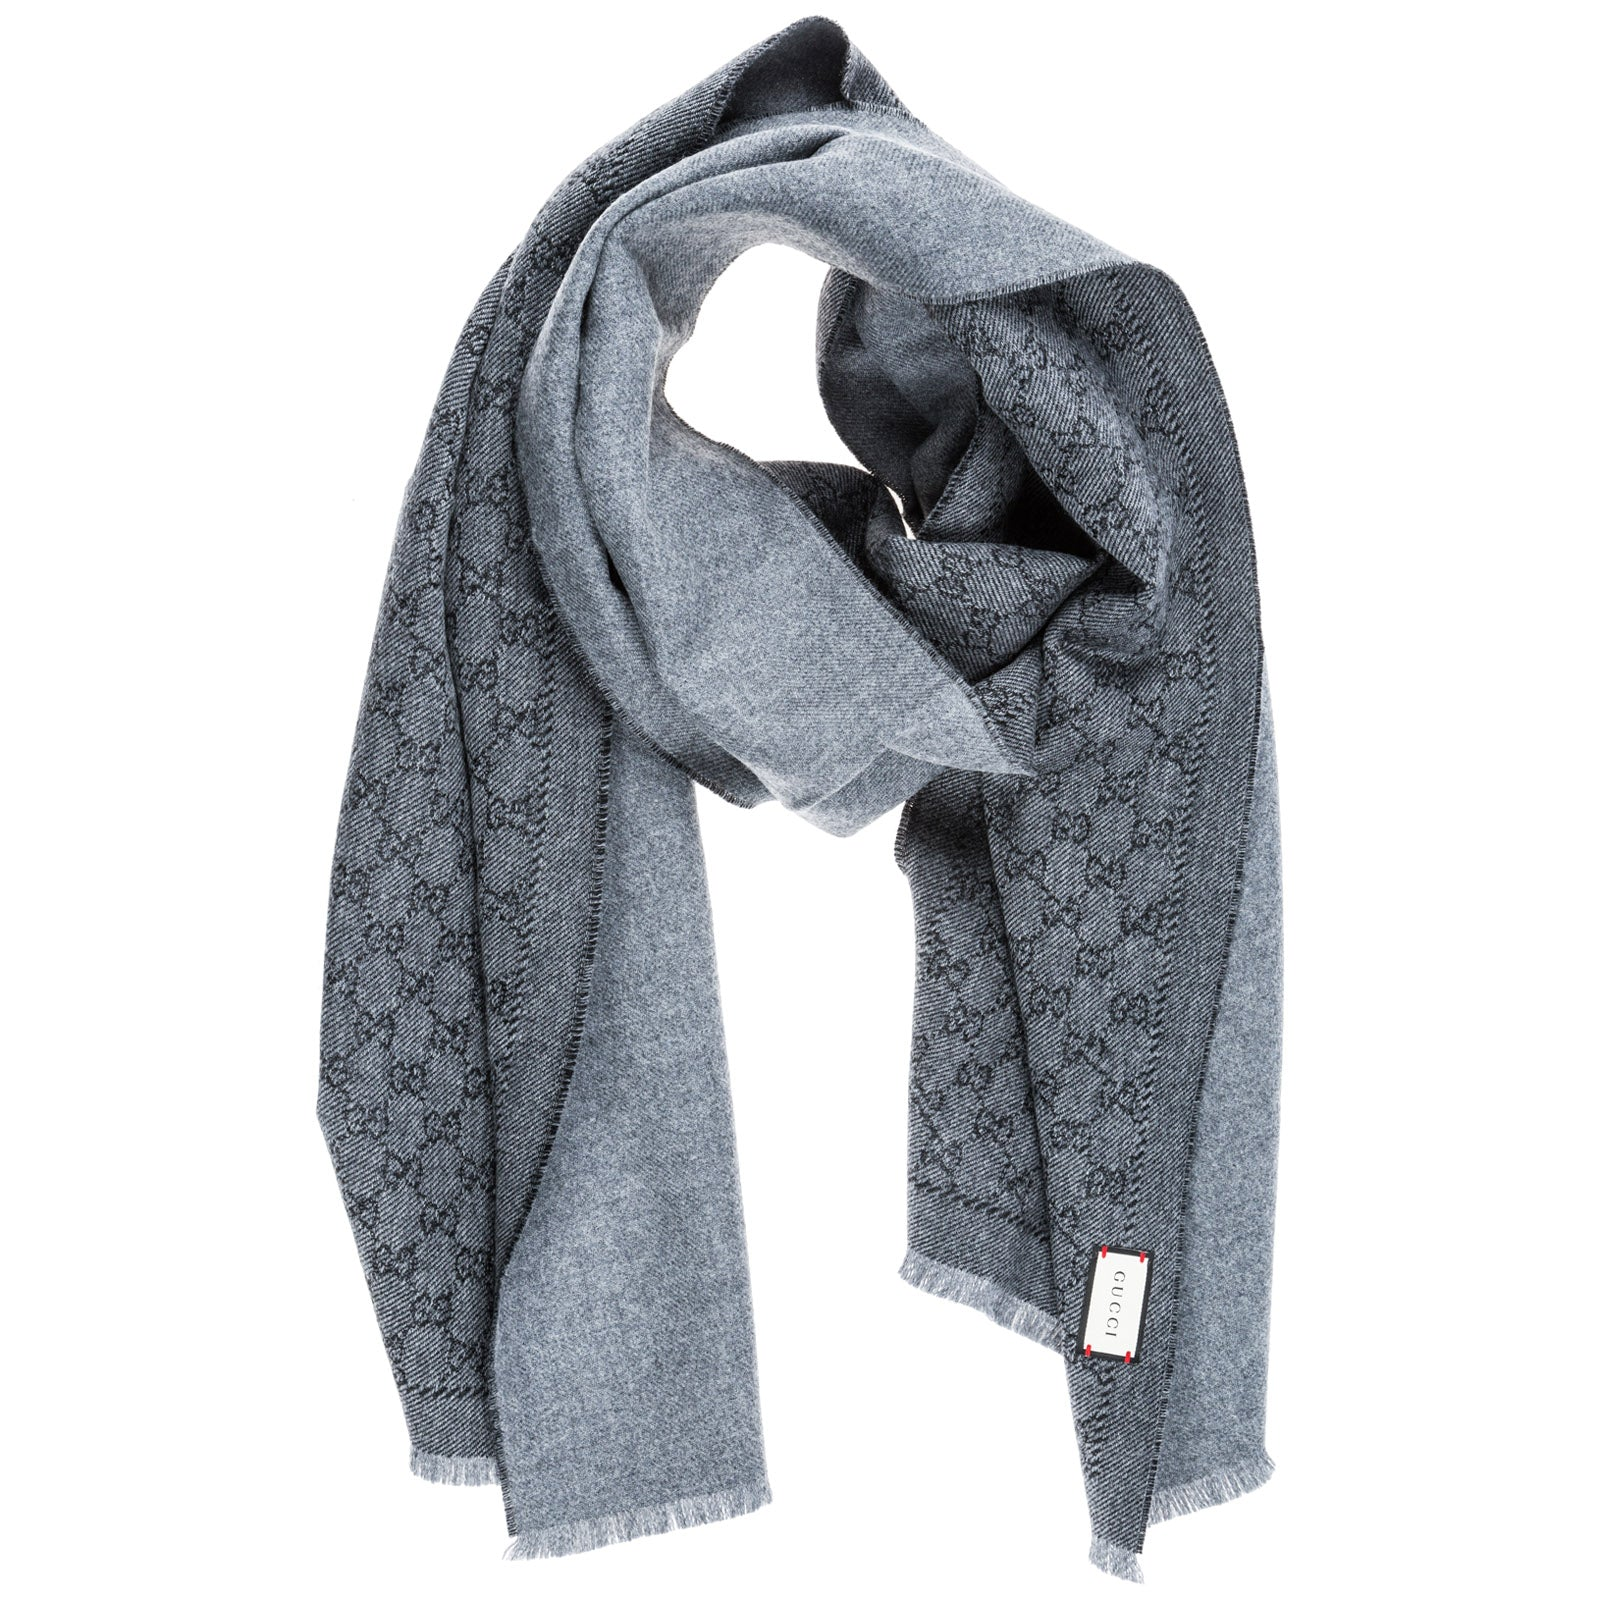 54cf82a58 Gucci Gg Jacquard Scarf In Only One Size | ModeSens